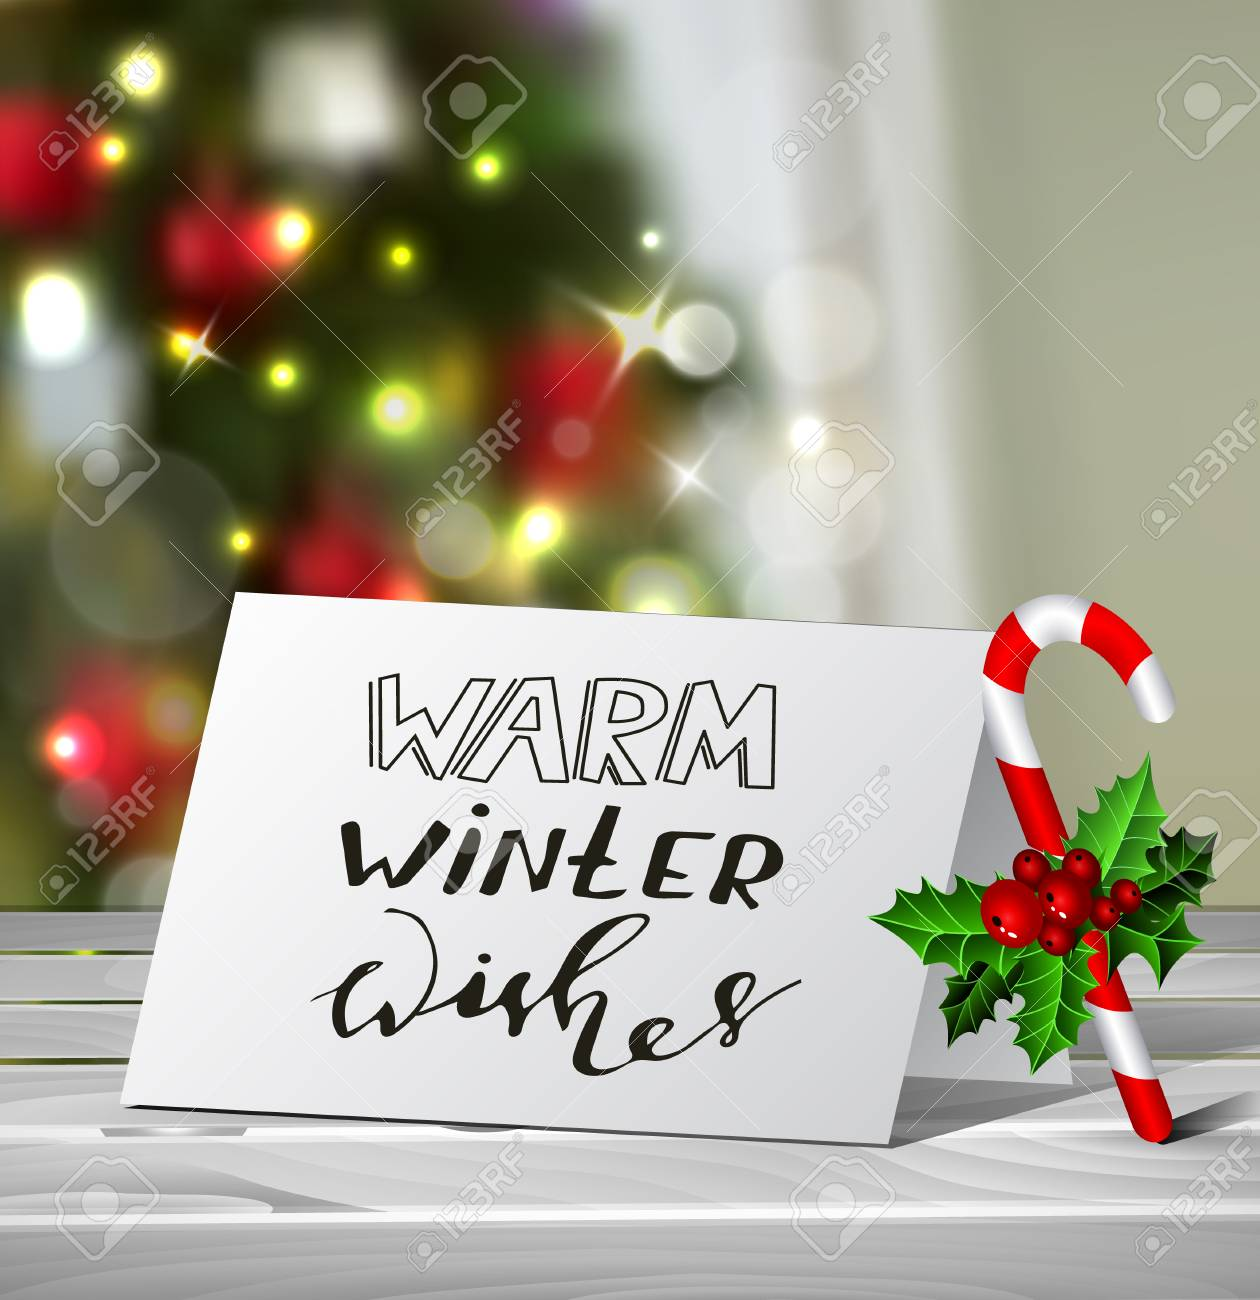 Christmas Greeting Card With Nadwritten Warm Winter Wishes Letters